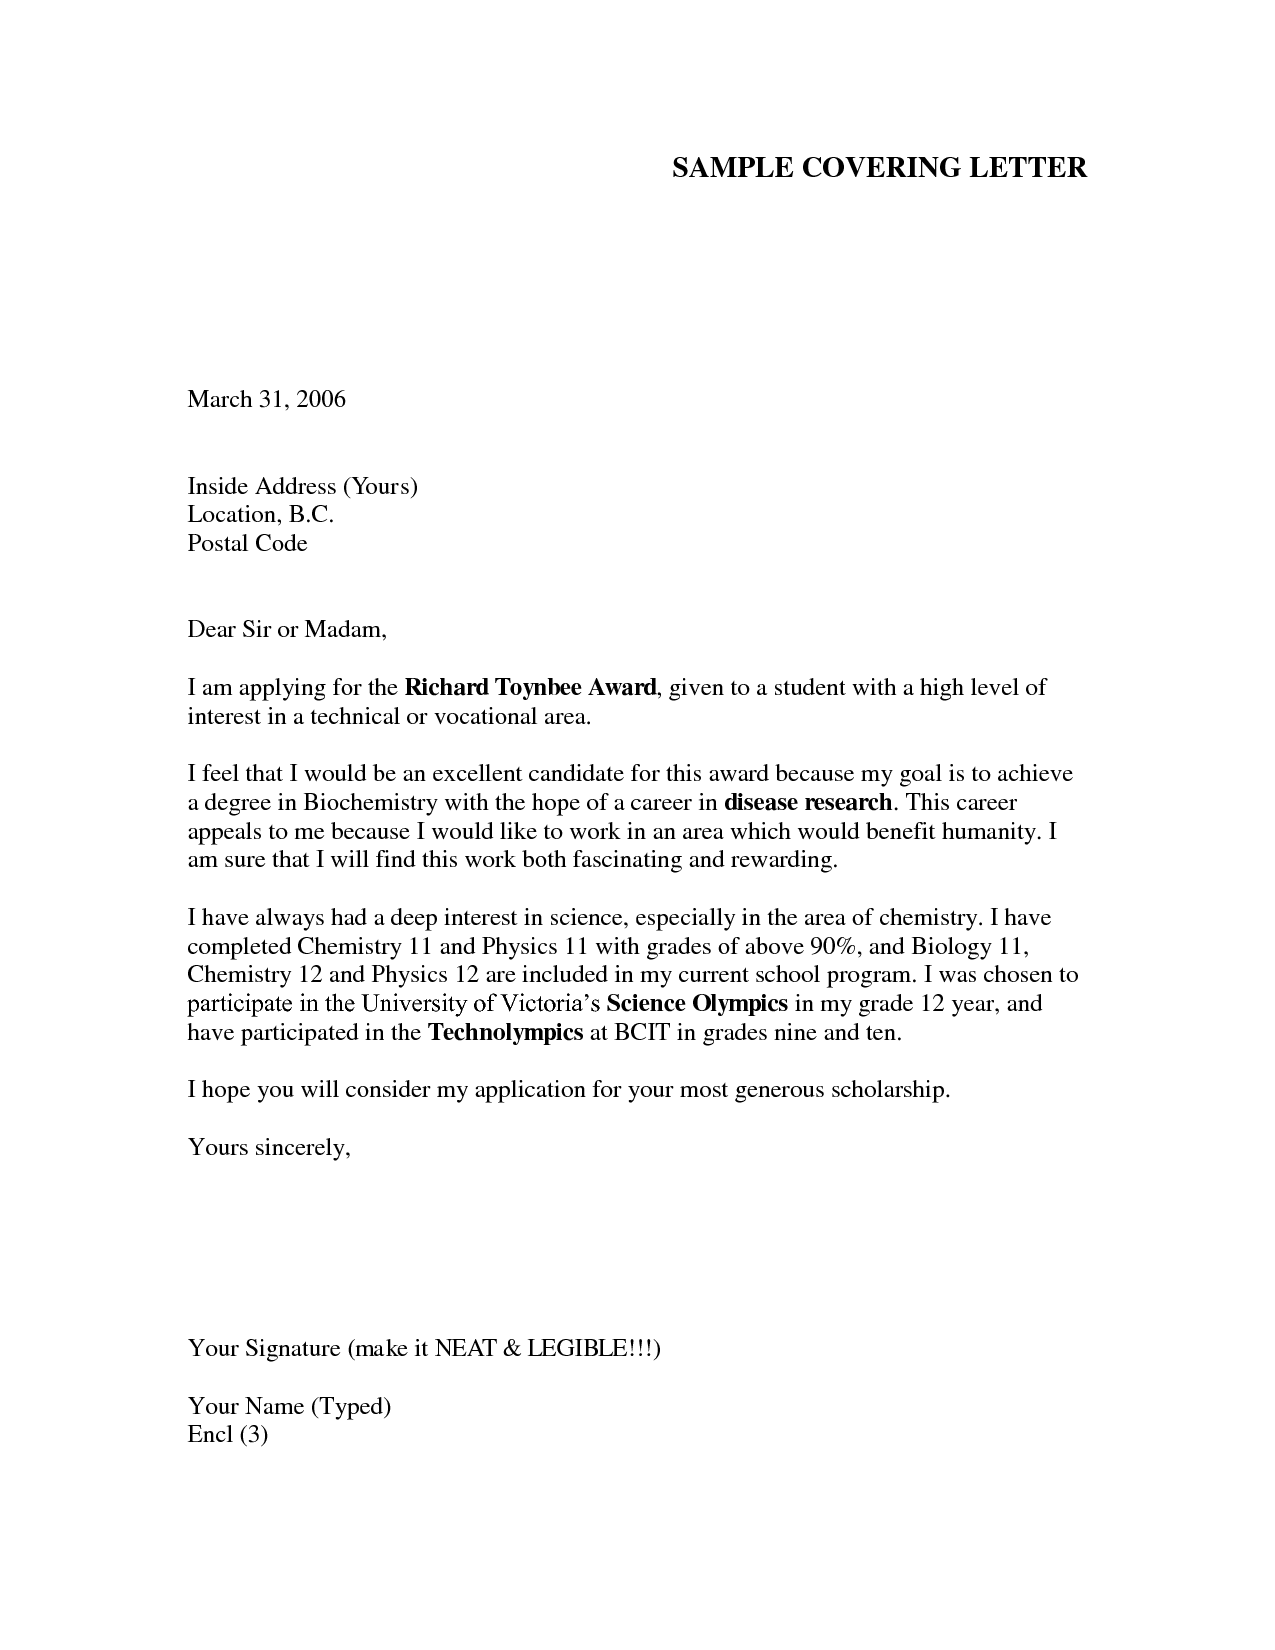 Cover Letter Format University Application - Writing the Cover Letter